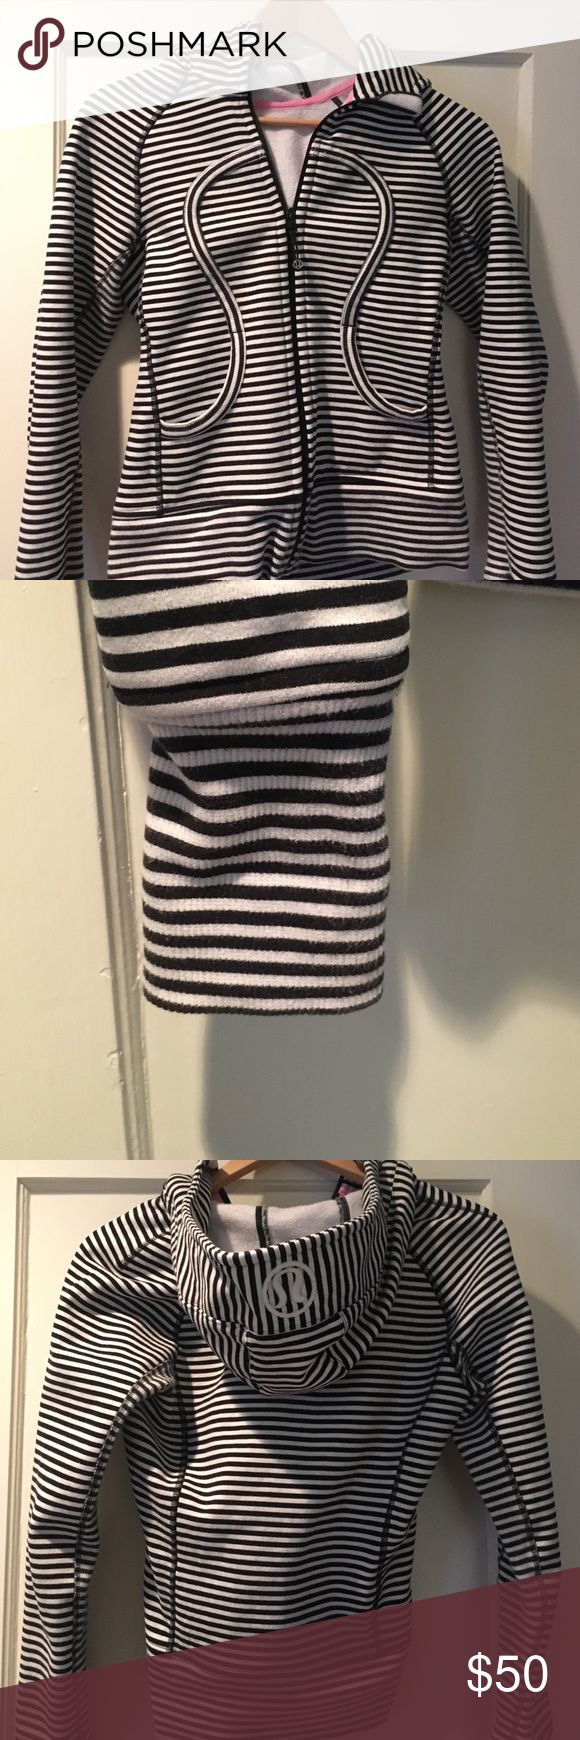 Black and white striped scuba hoodie Great condition, gently worn. I bought it from Posh but I like a little looser fit so passing it on to another lucky lady. lululemon athletica Tops Sweatshirts & Hoodies